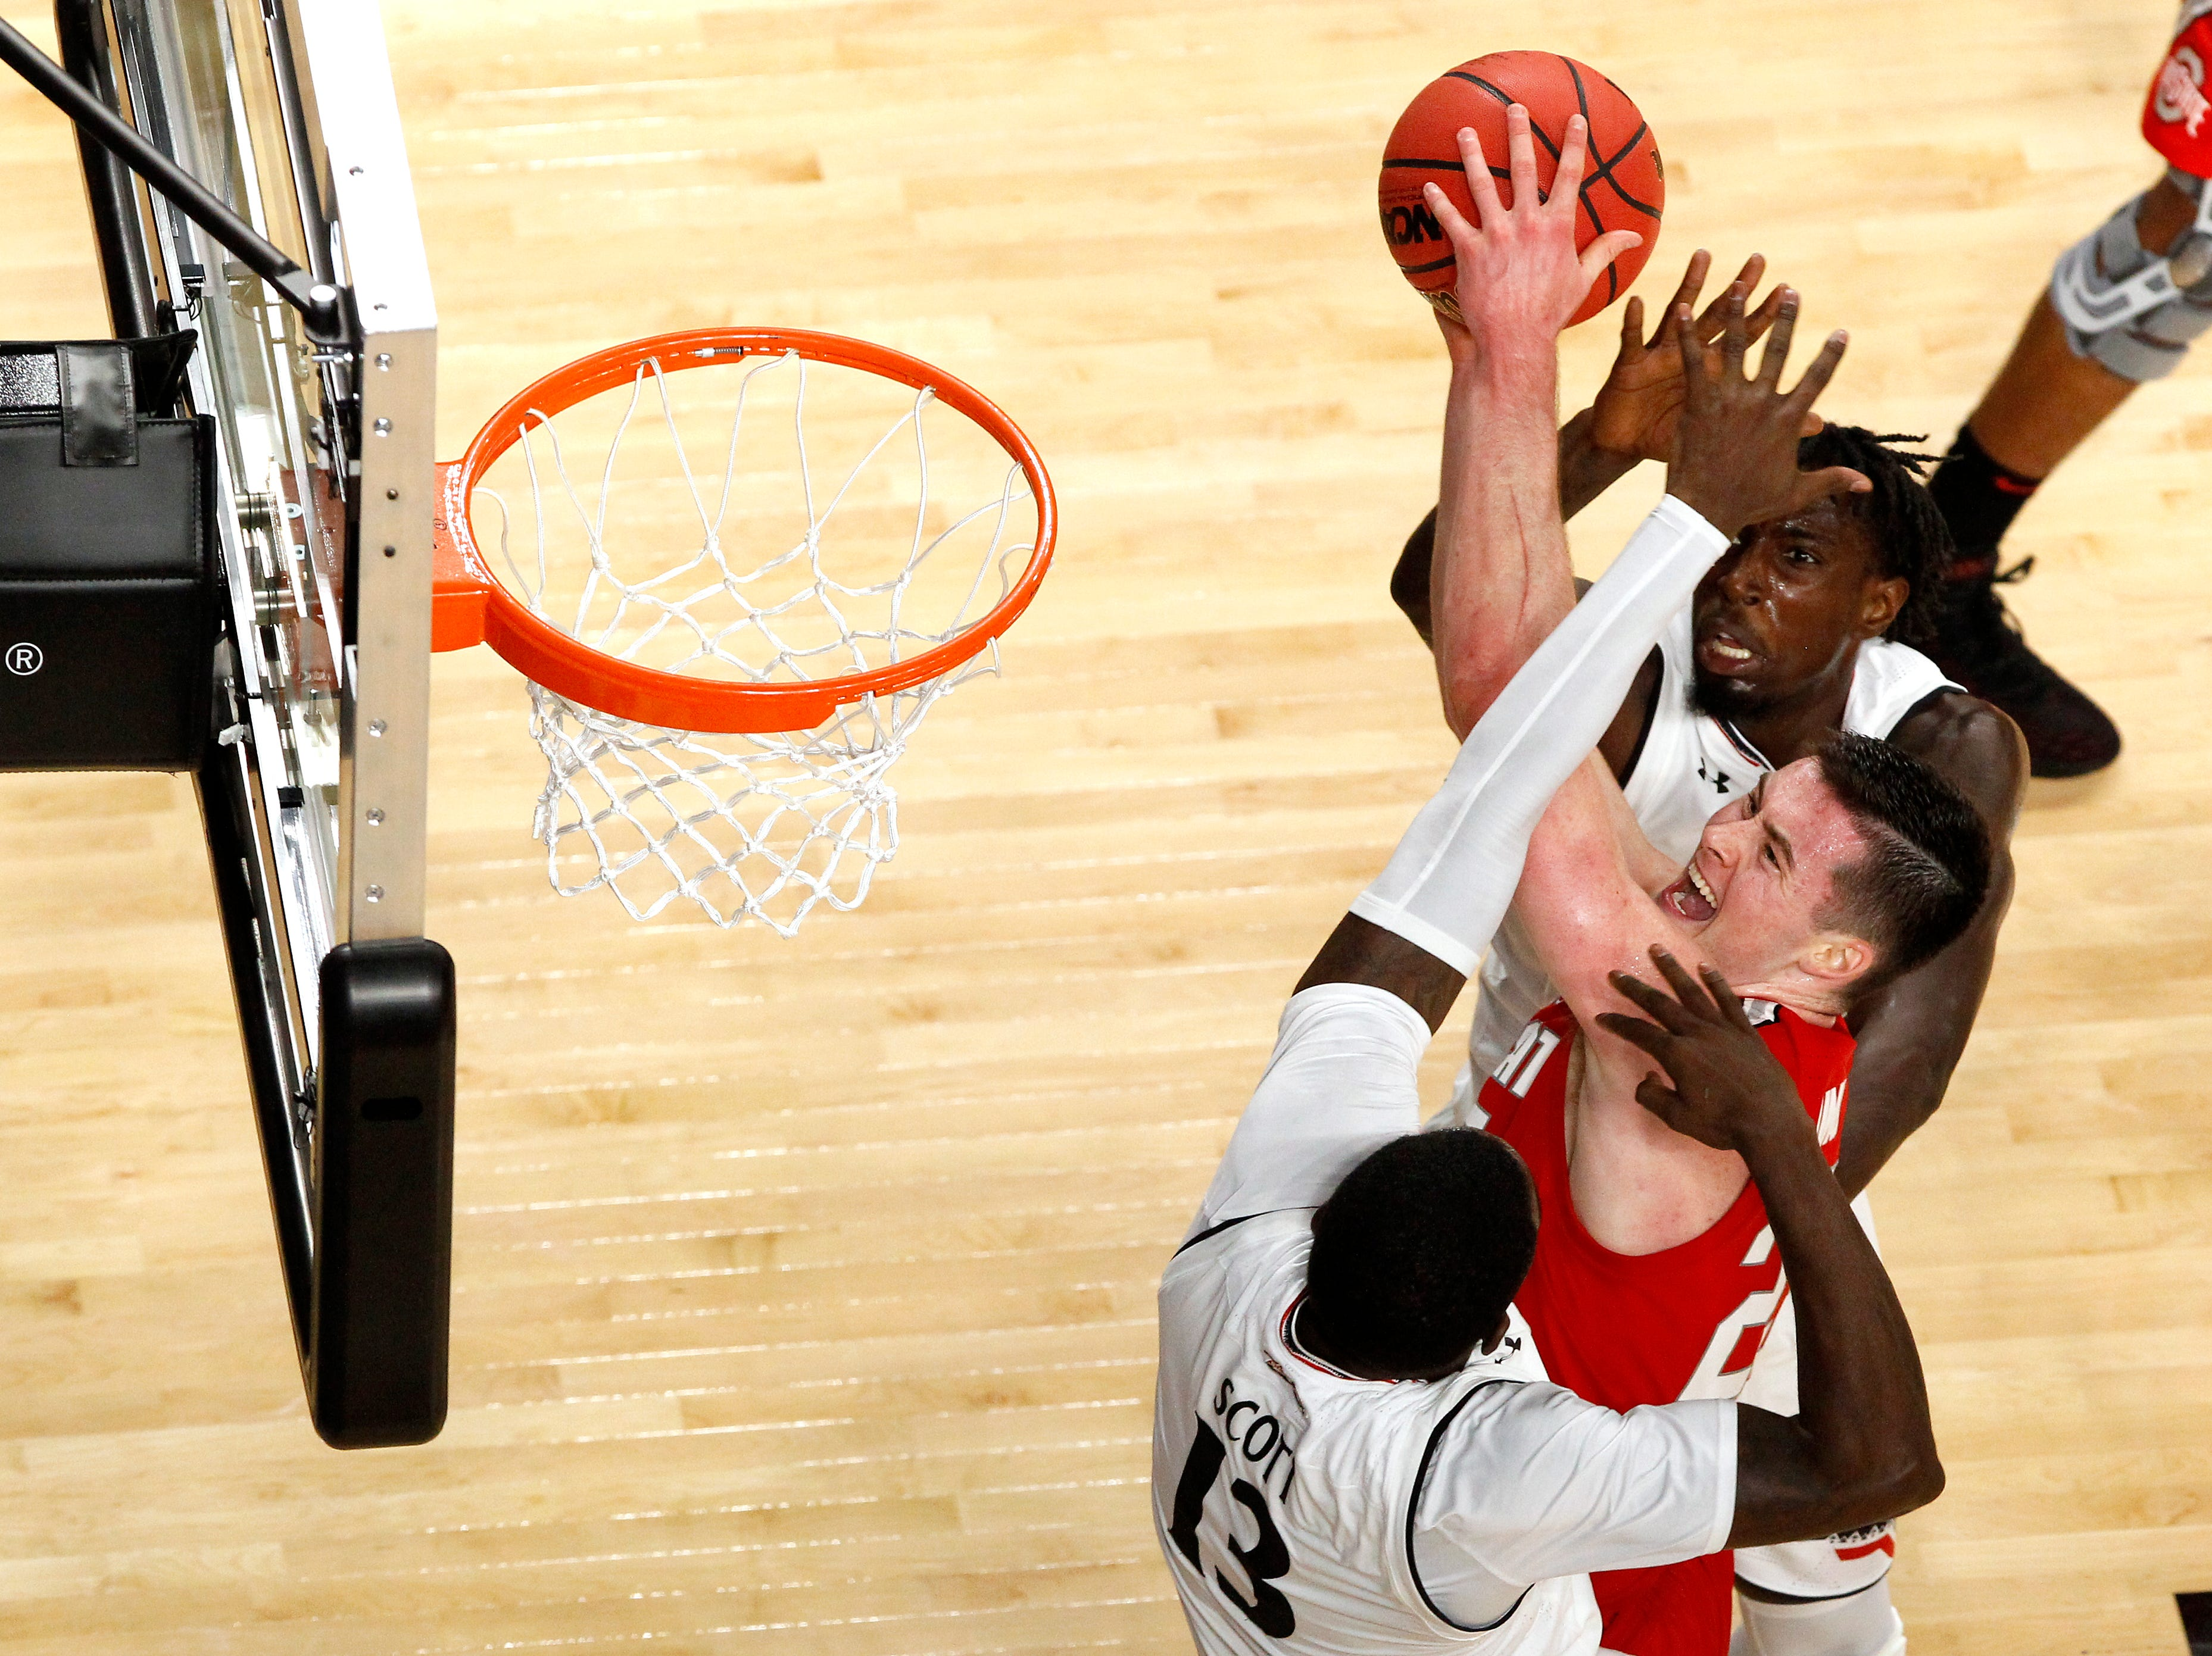 Ohio State Buckeyes forward Kyle Young (25) goes up for a shot in the second half of a college basketball game between the Ohio State Buckeyes and the Cincinnati Bearcats, Wednesday, Nov. 7, 2018, at Fifth Third Arena in Cincinnati.